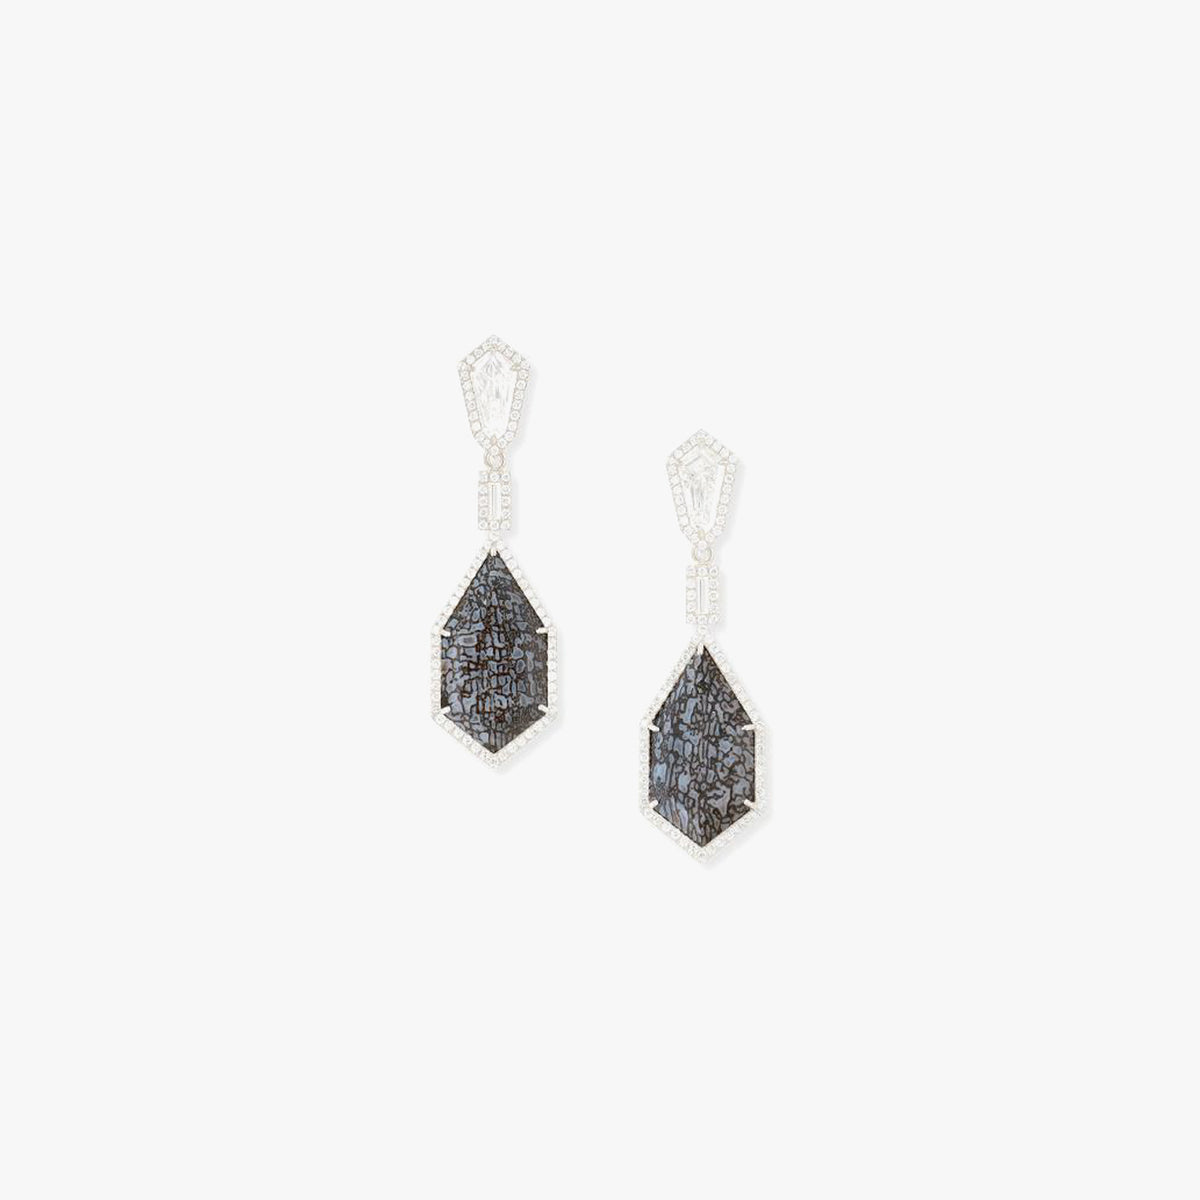 Kite step-cut Diamond and Blue Fossilized Dinosaur bone Earrings